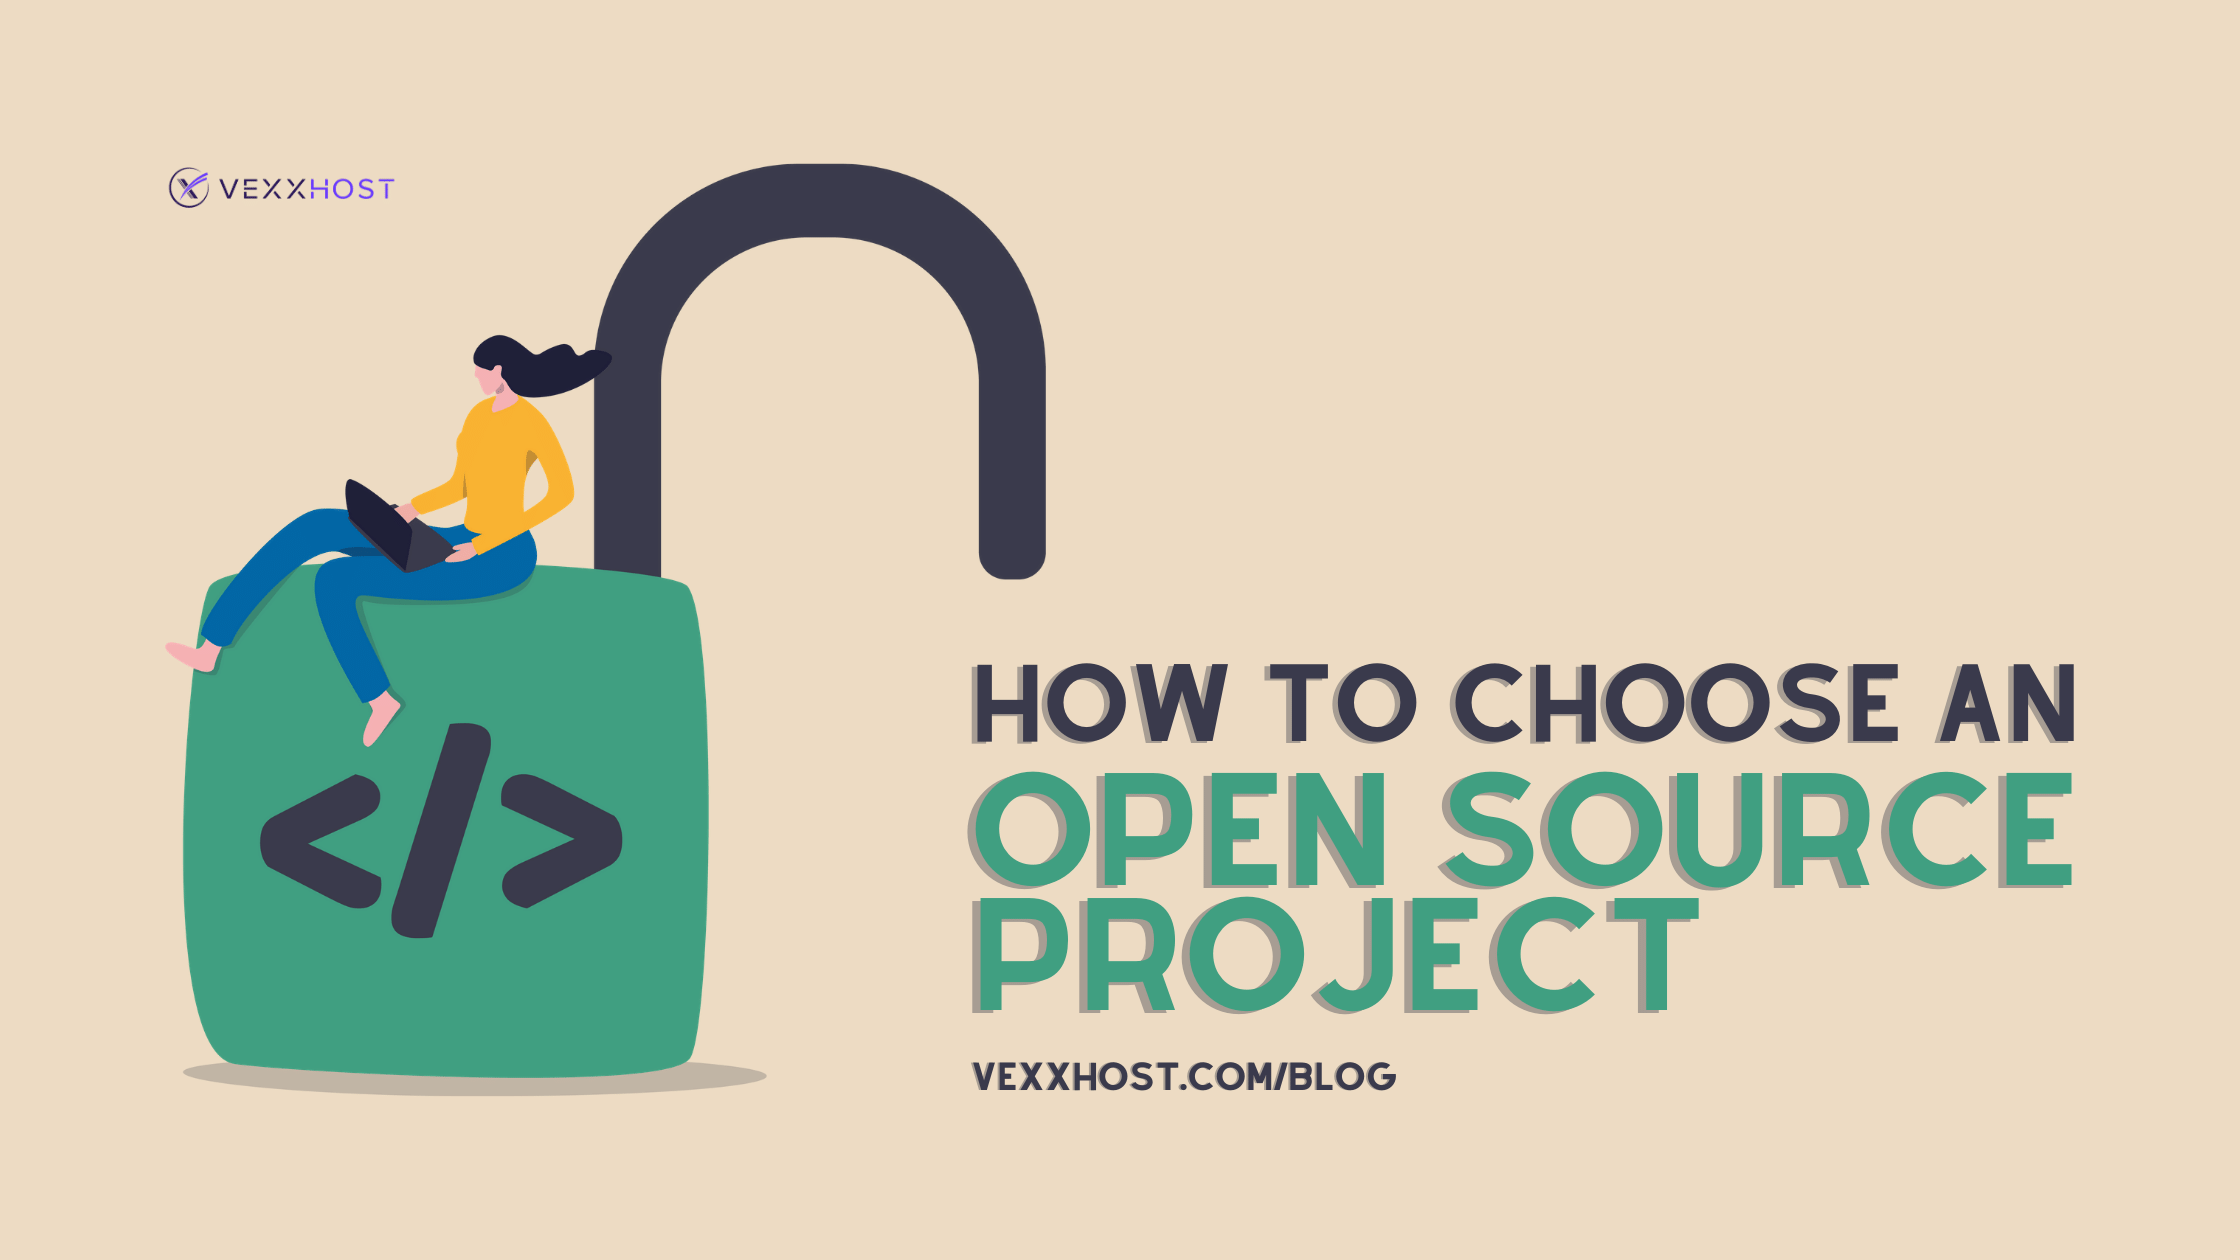 choosing-open-source-projects-vexxhost-blog-header